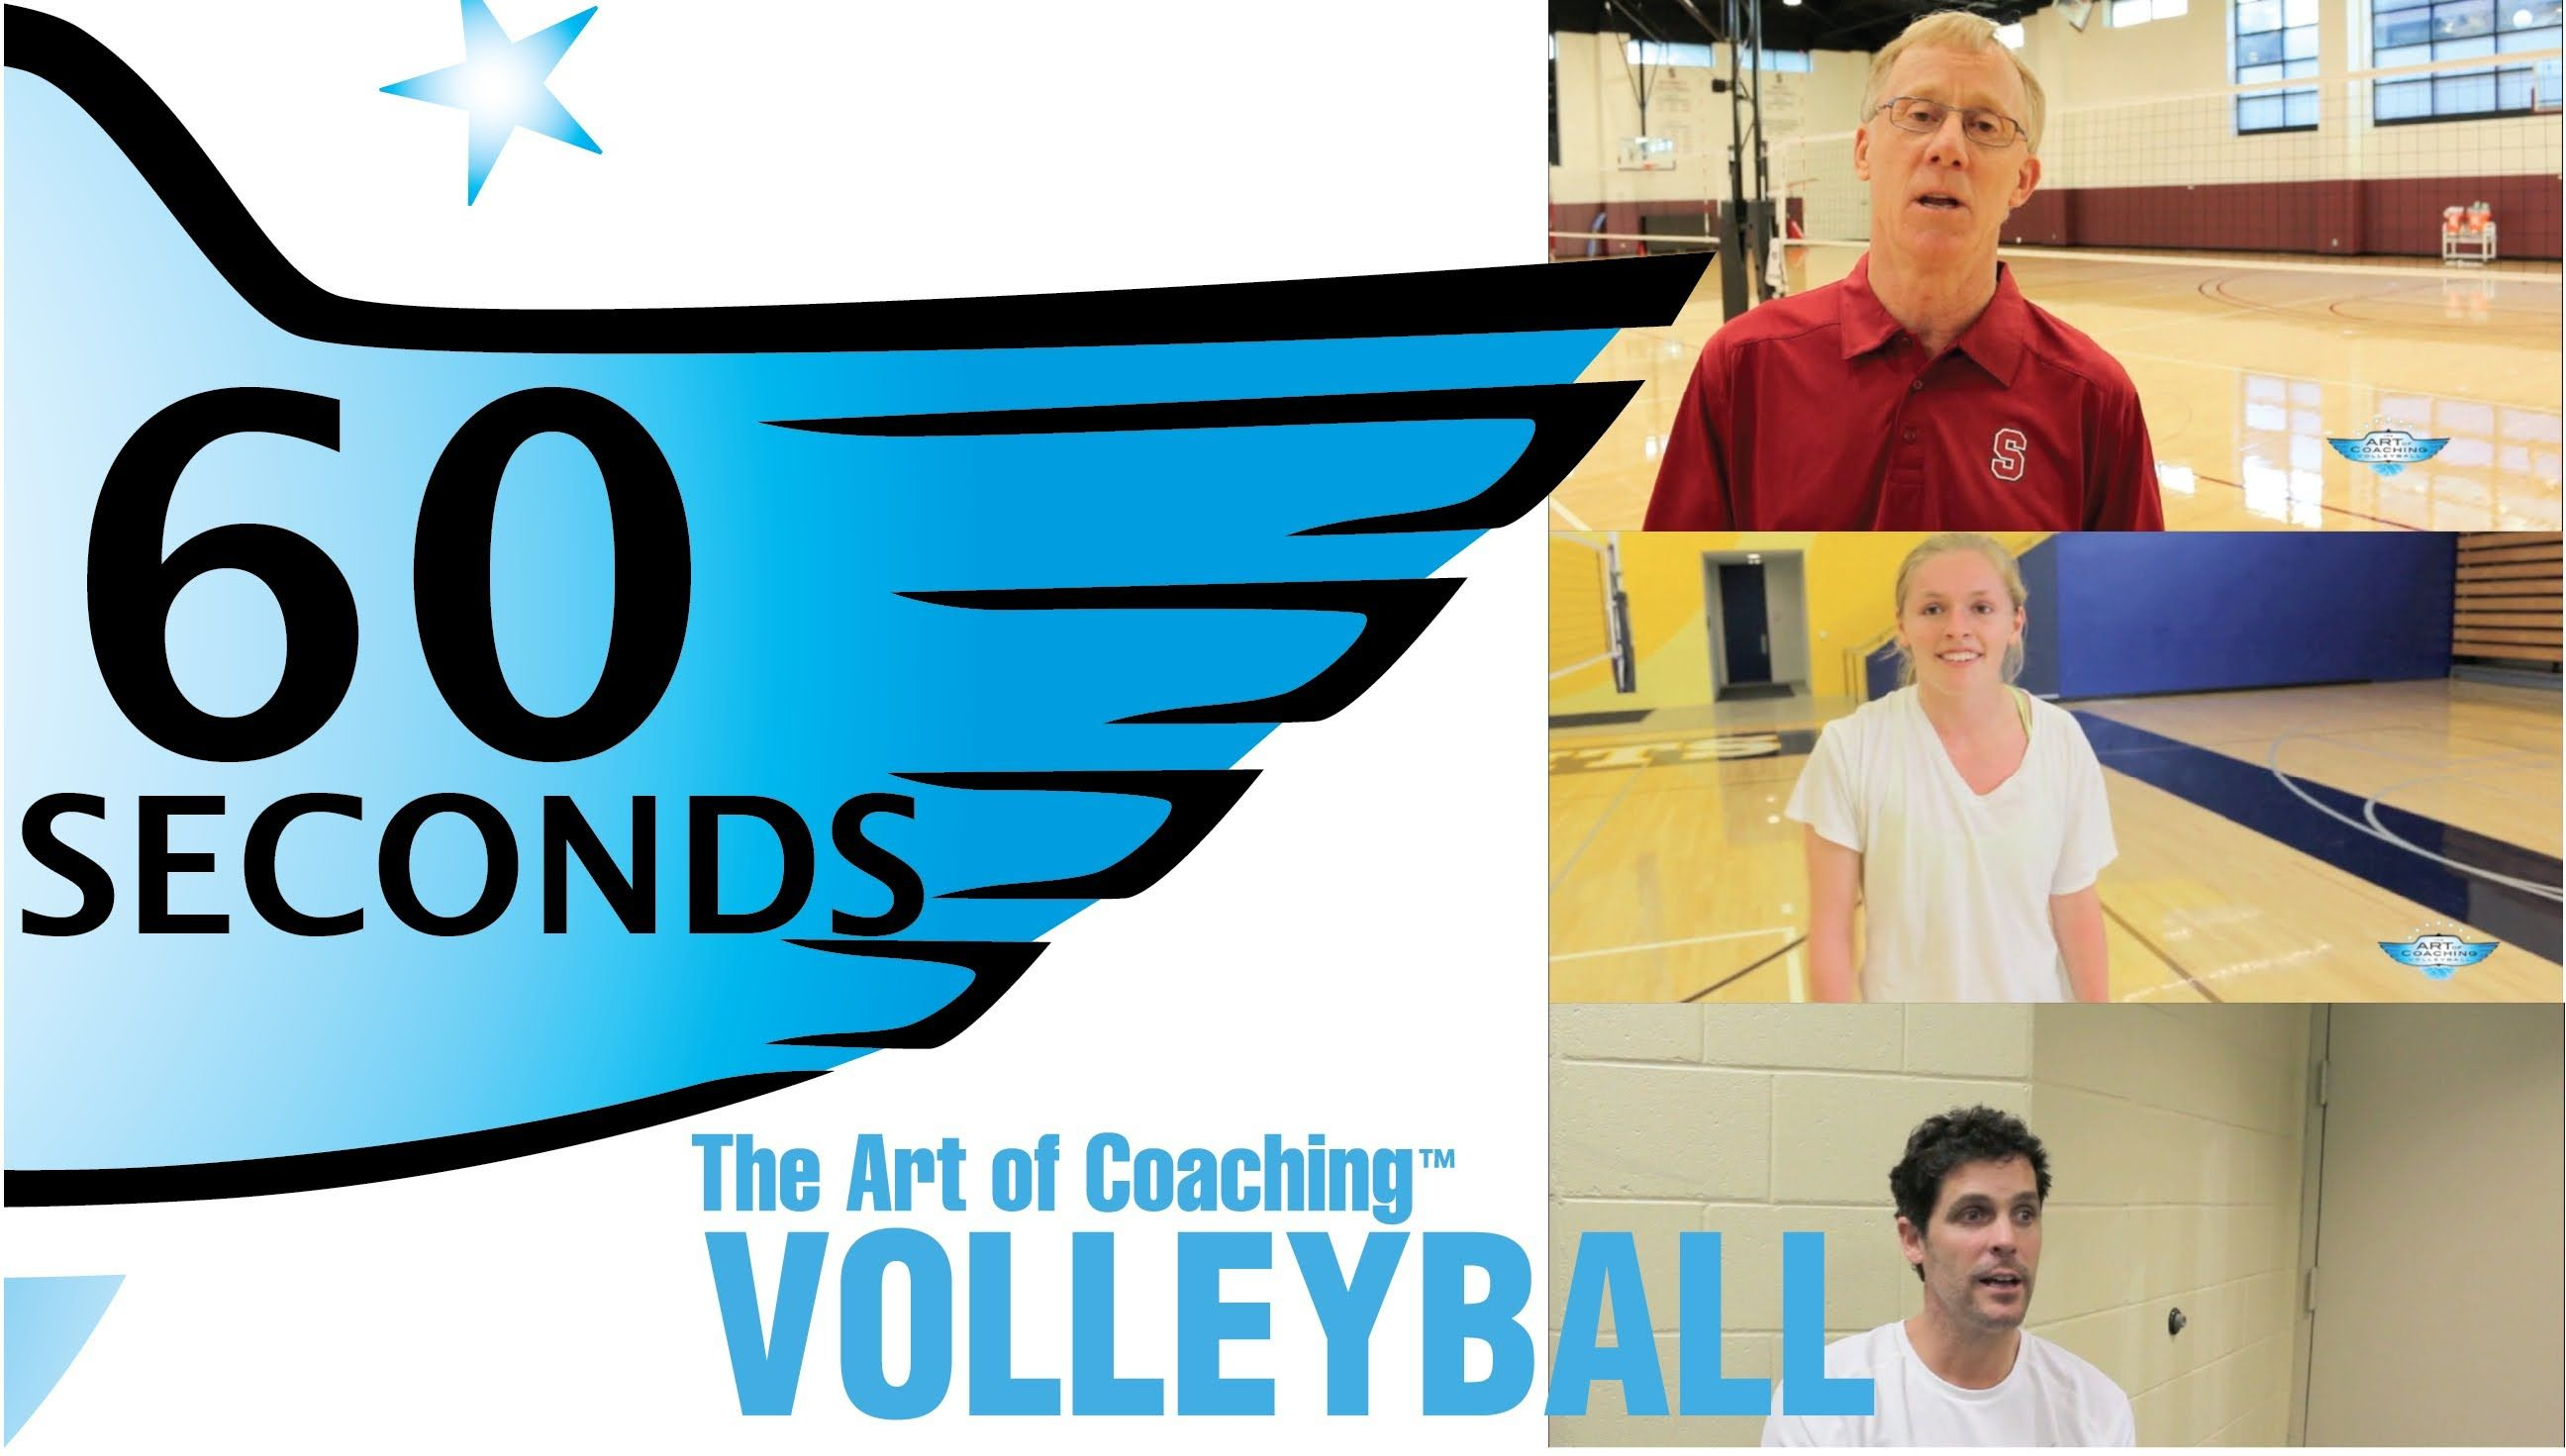 60 Seconds Of Coaching Do S And Don Ts Volleyball Tryout Tips And Warm Up Drills Volleyball Tryouts Coaching Volleyball Volleyball Drills